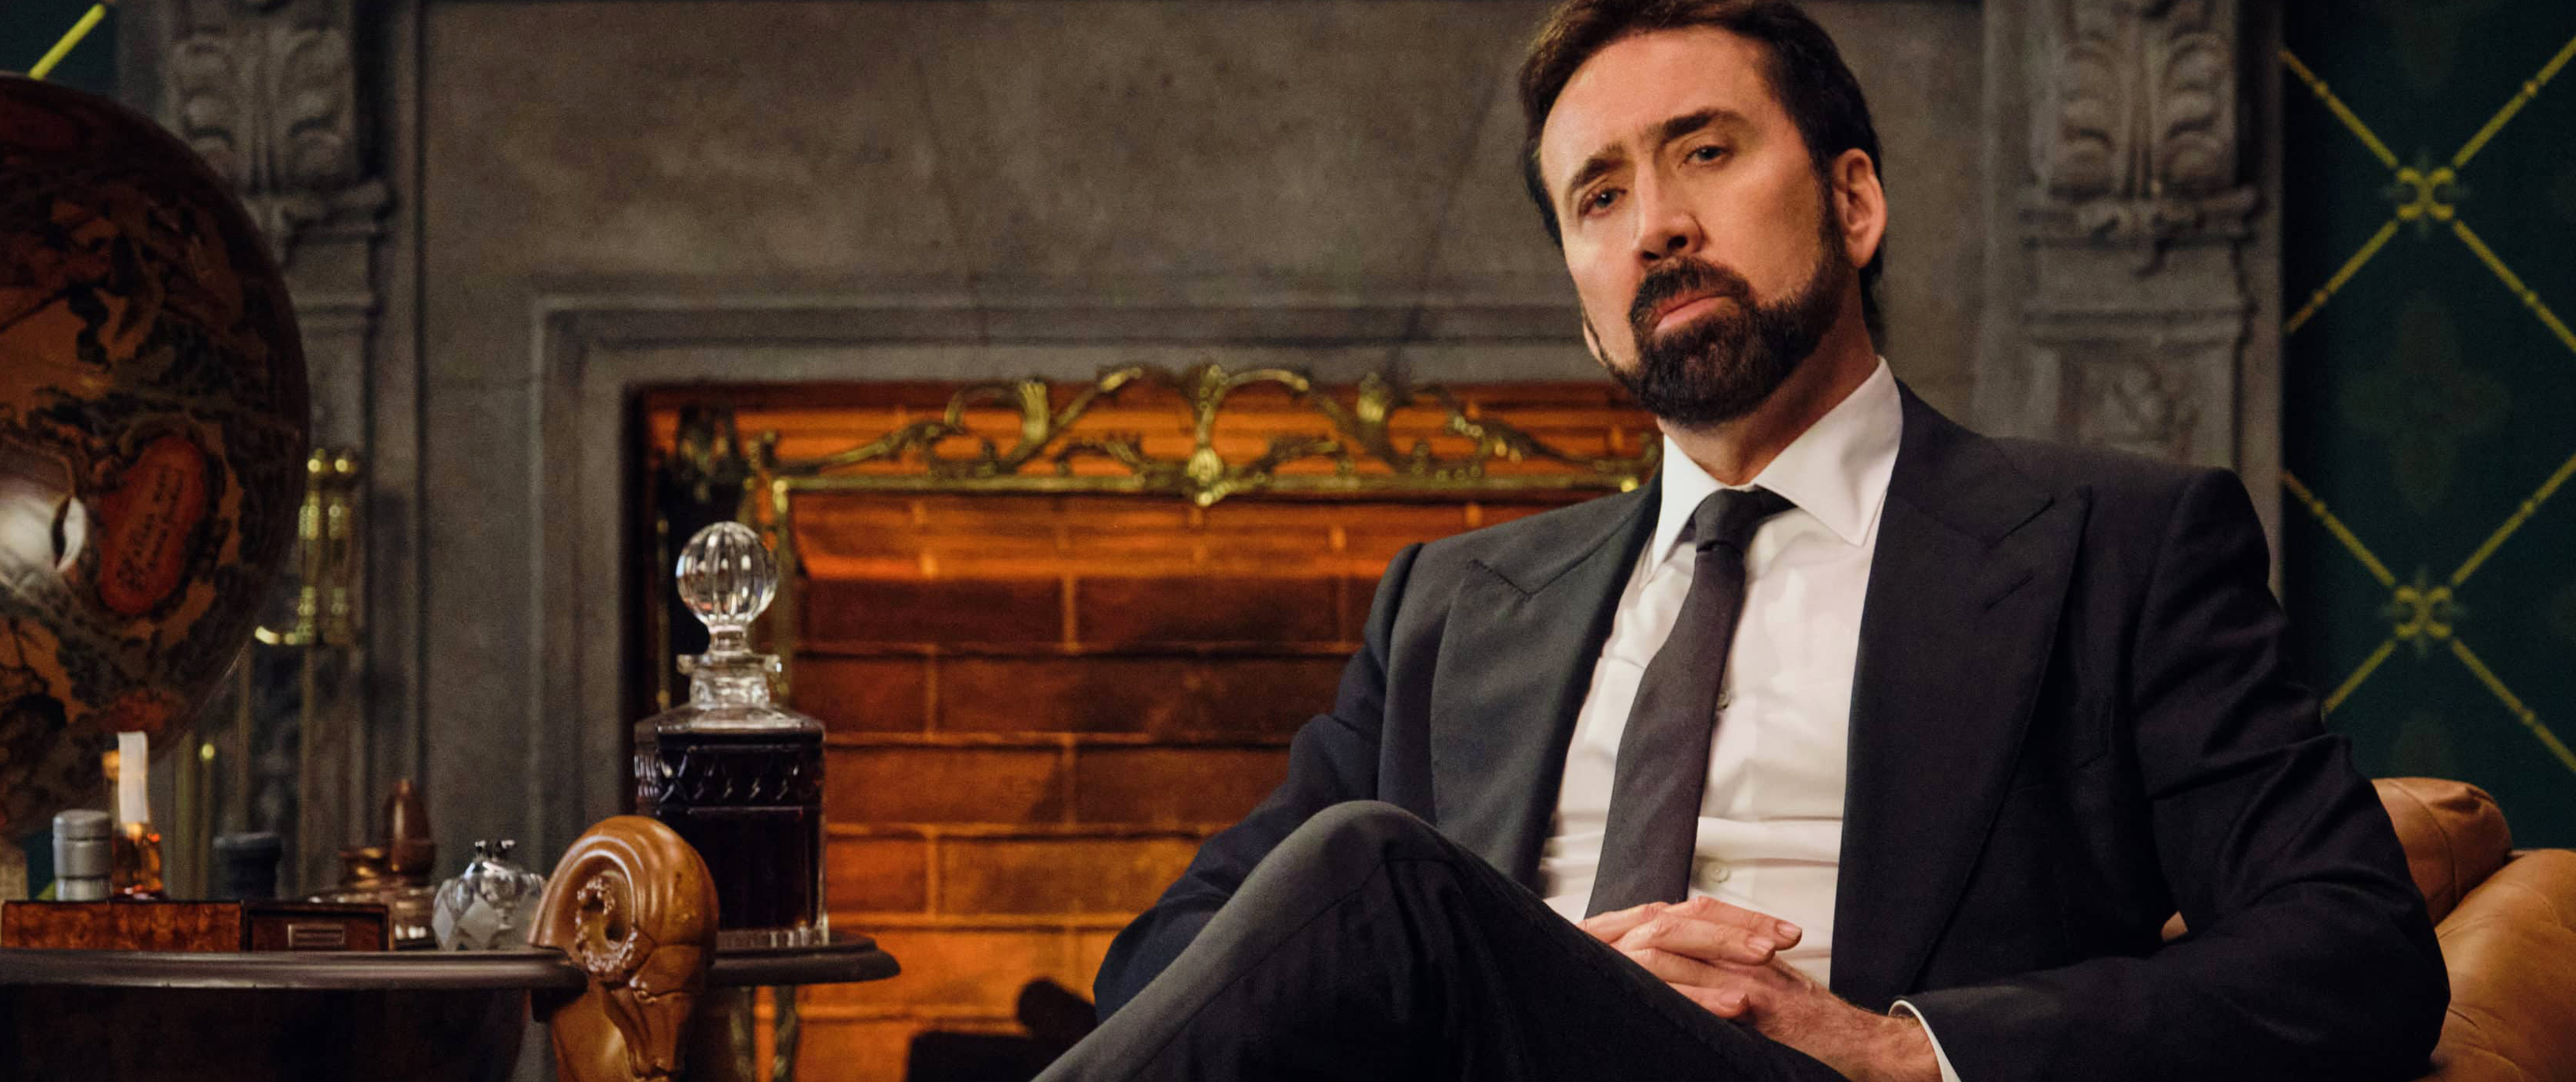 What to watch on Netflix in January 2021 | Gentleman's Journal